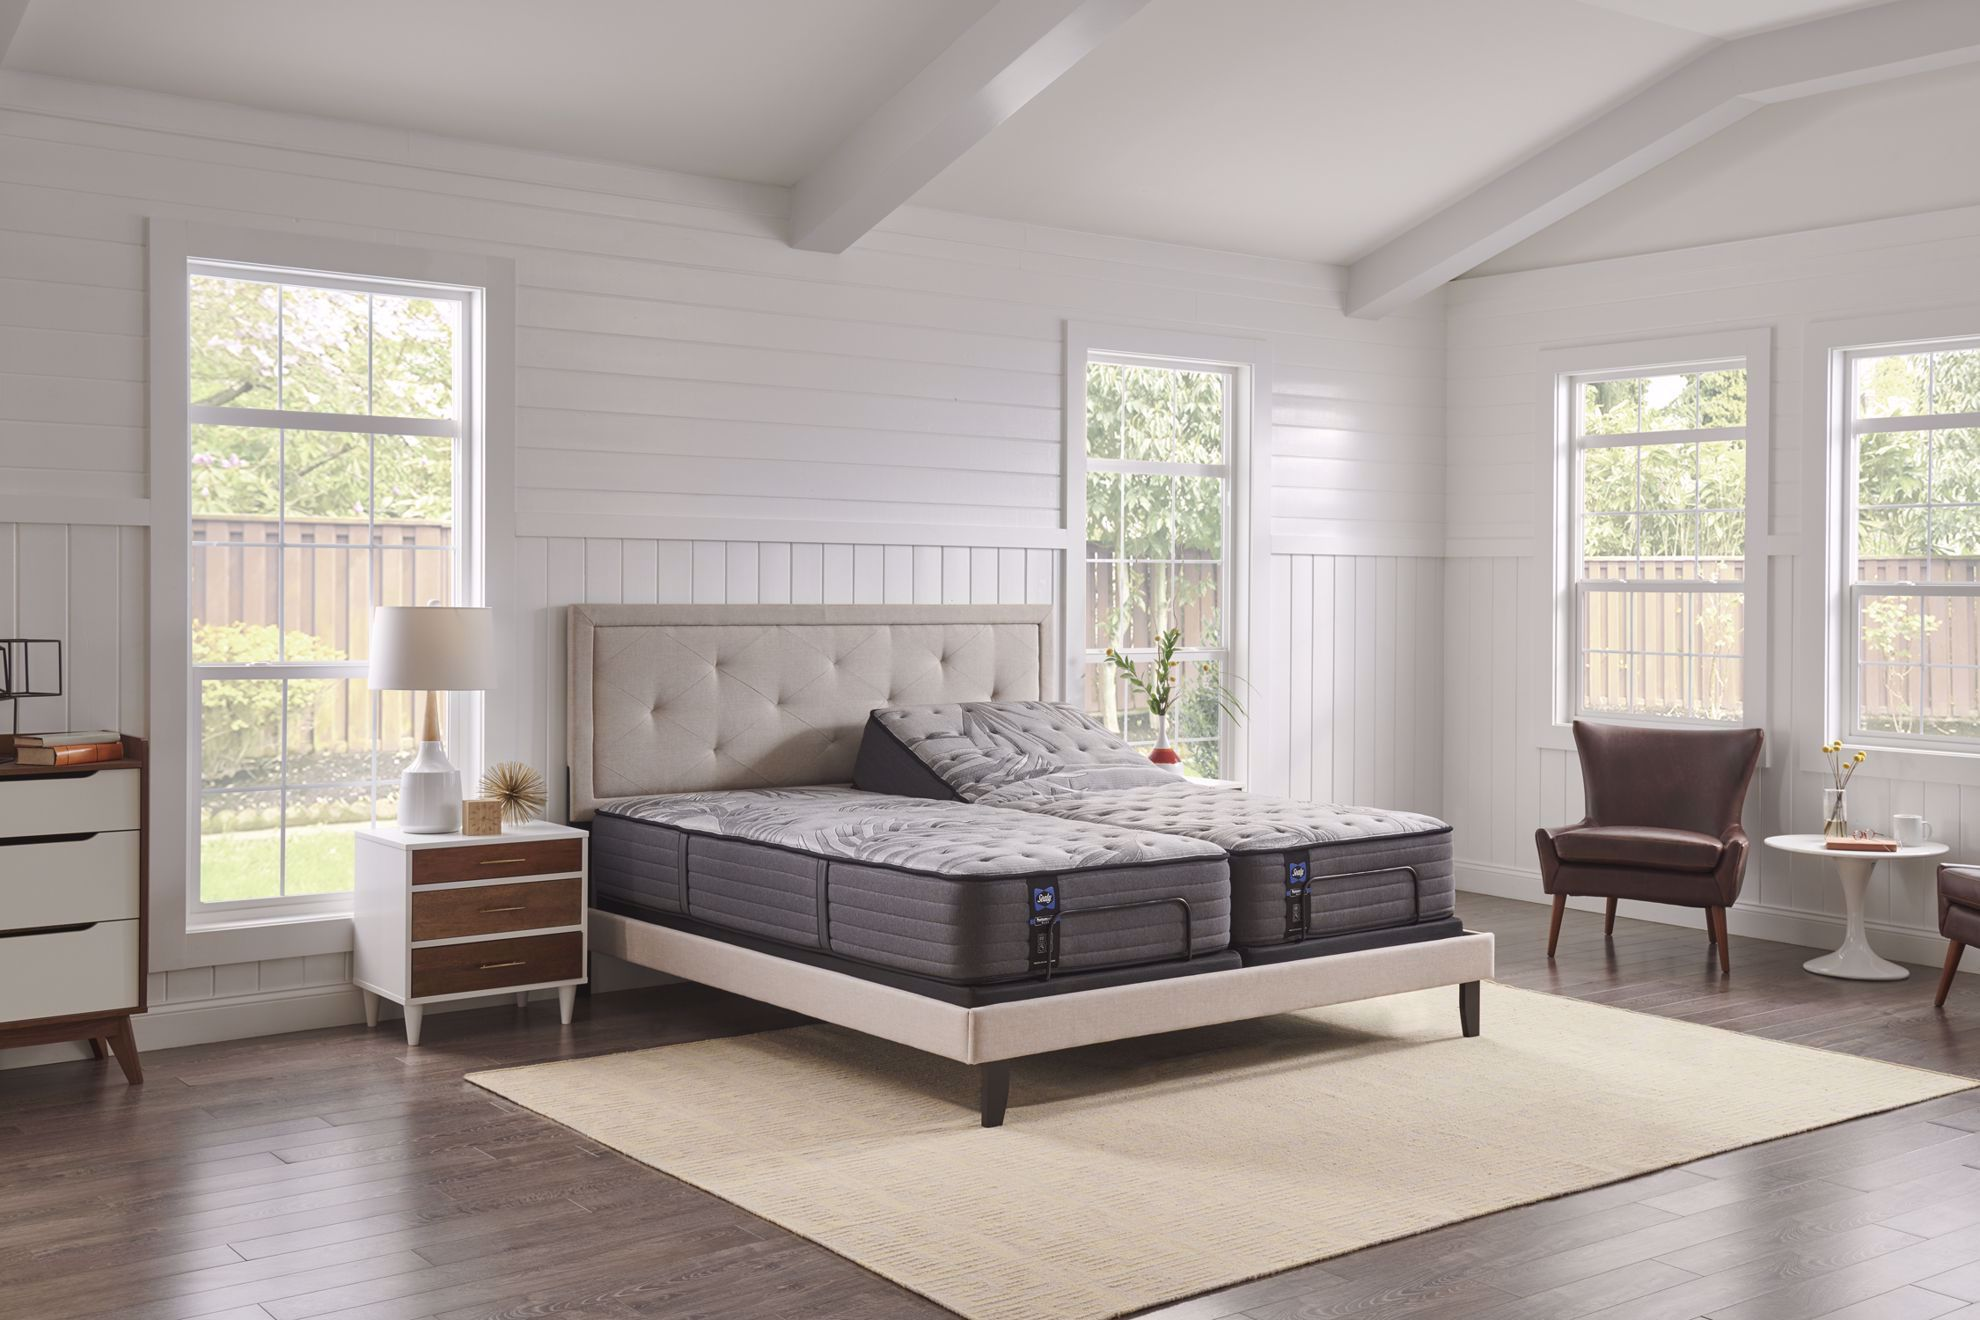 Picture of Sealy Posturepedic  Plus Satisfied Cushion Firm Queen Mattress Set